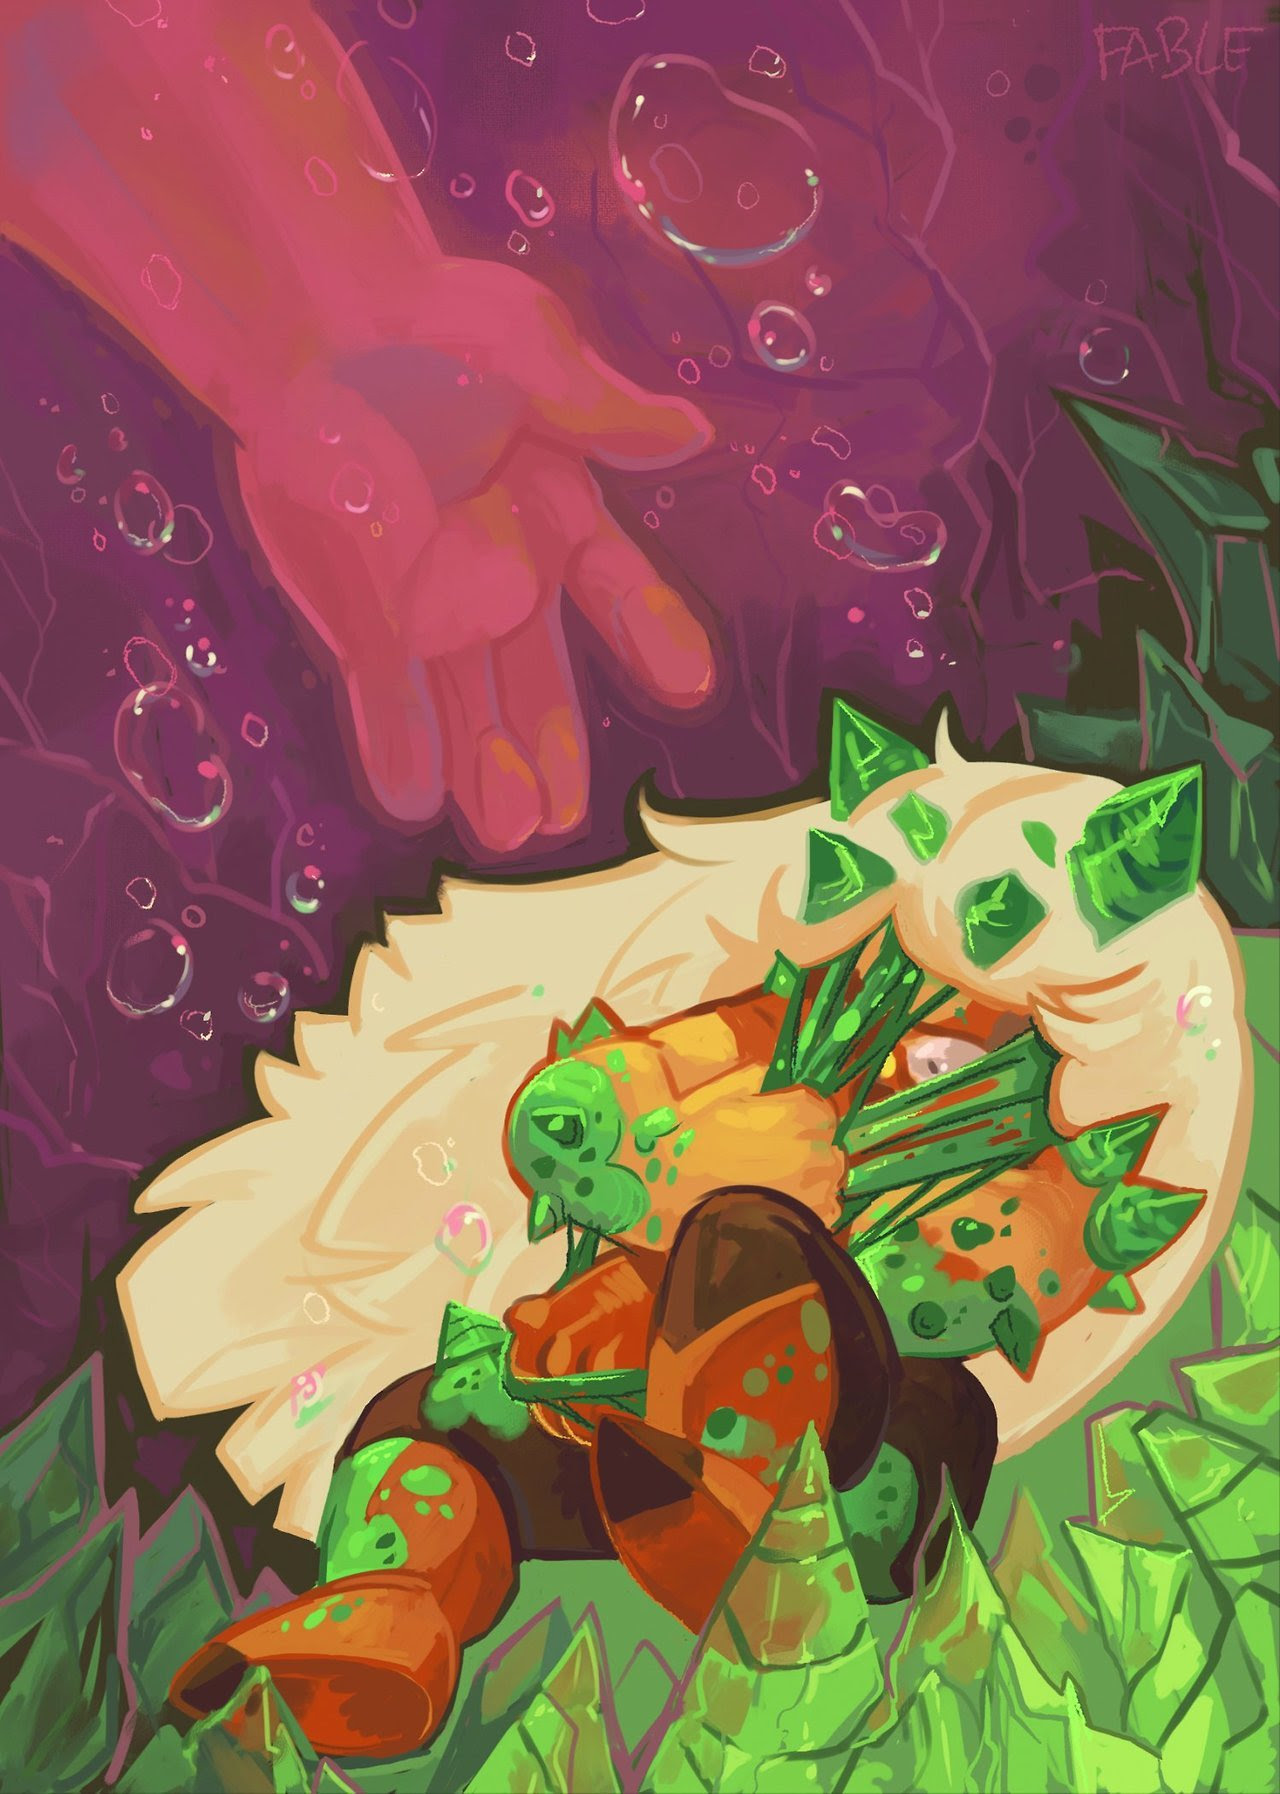 Since it's another SU bomb day, here's a painting I did of Jasper for a zine a while back.